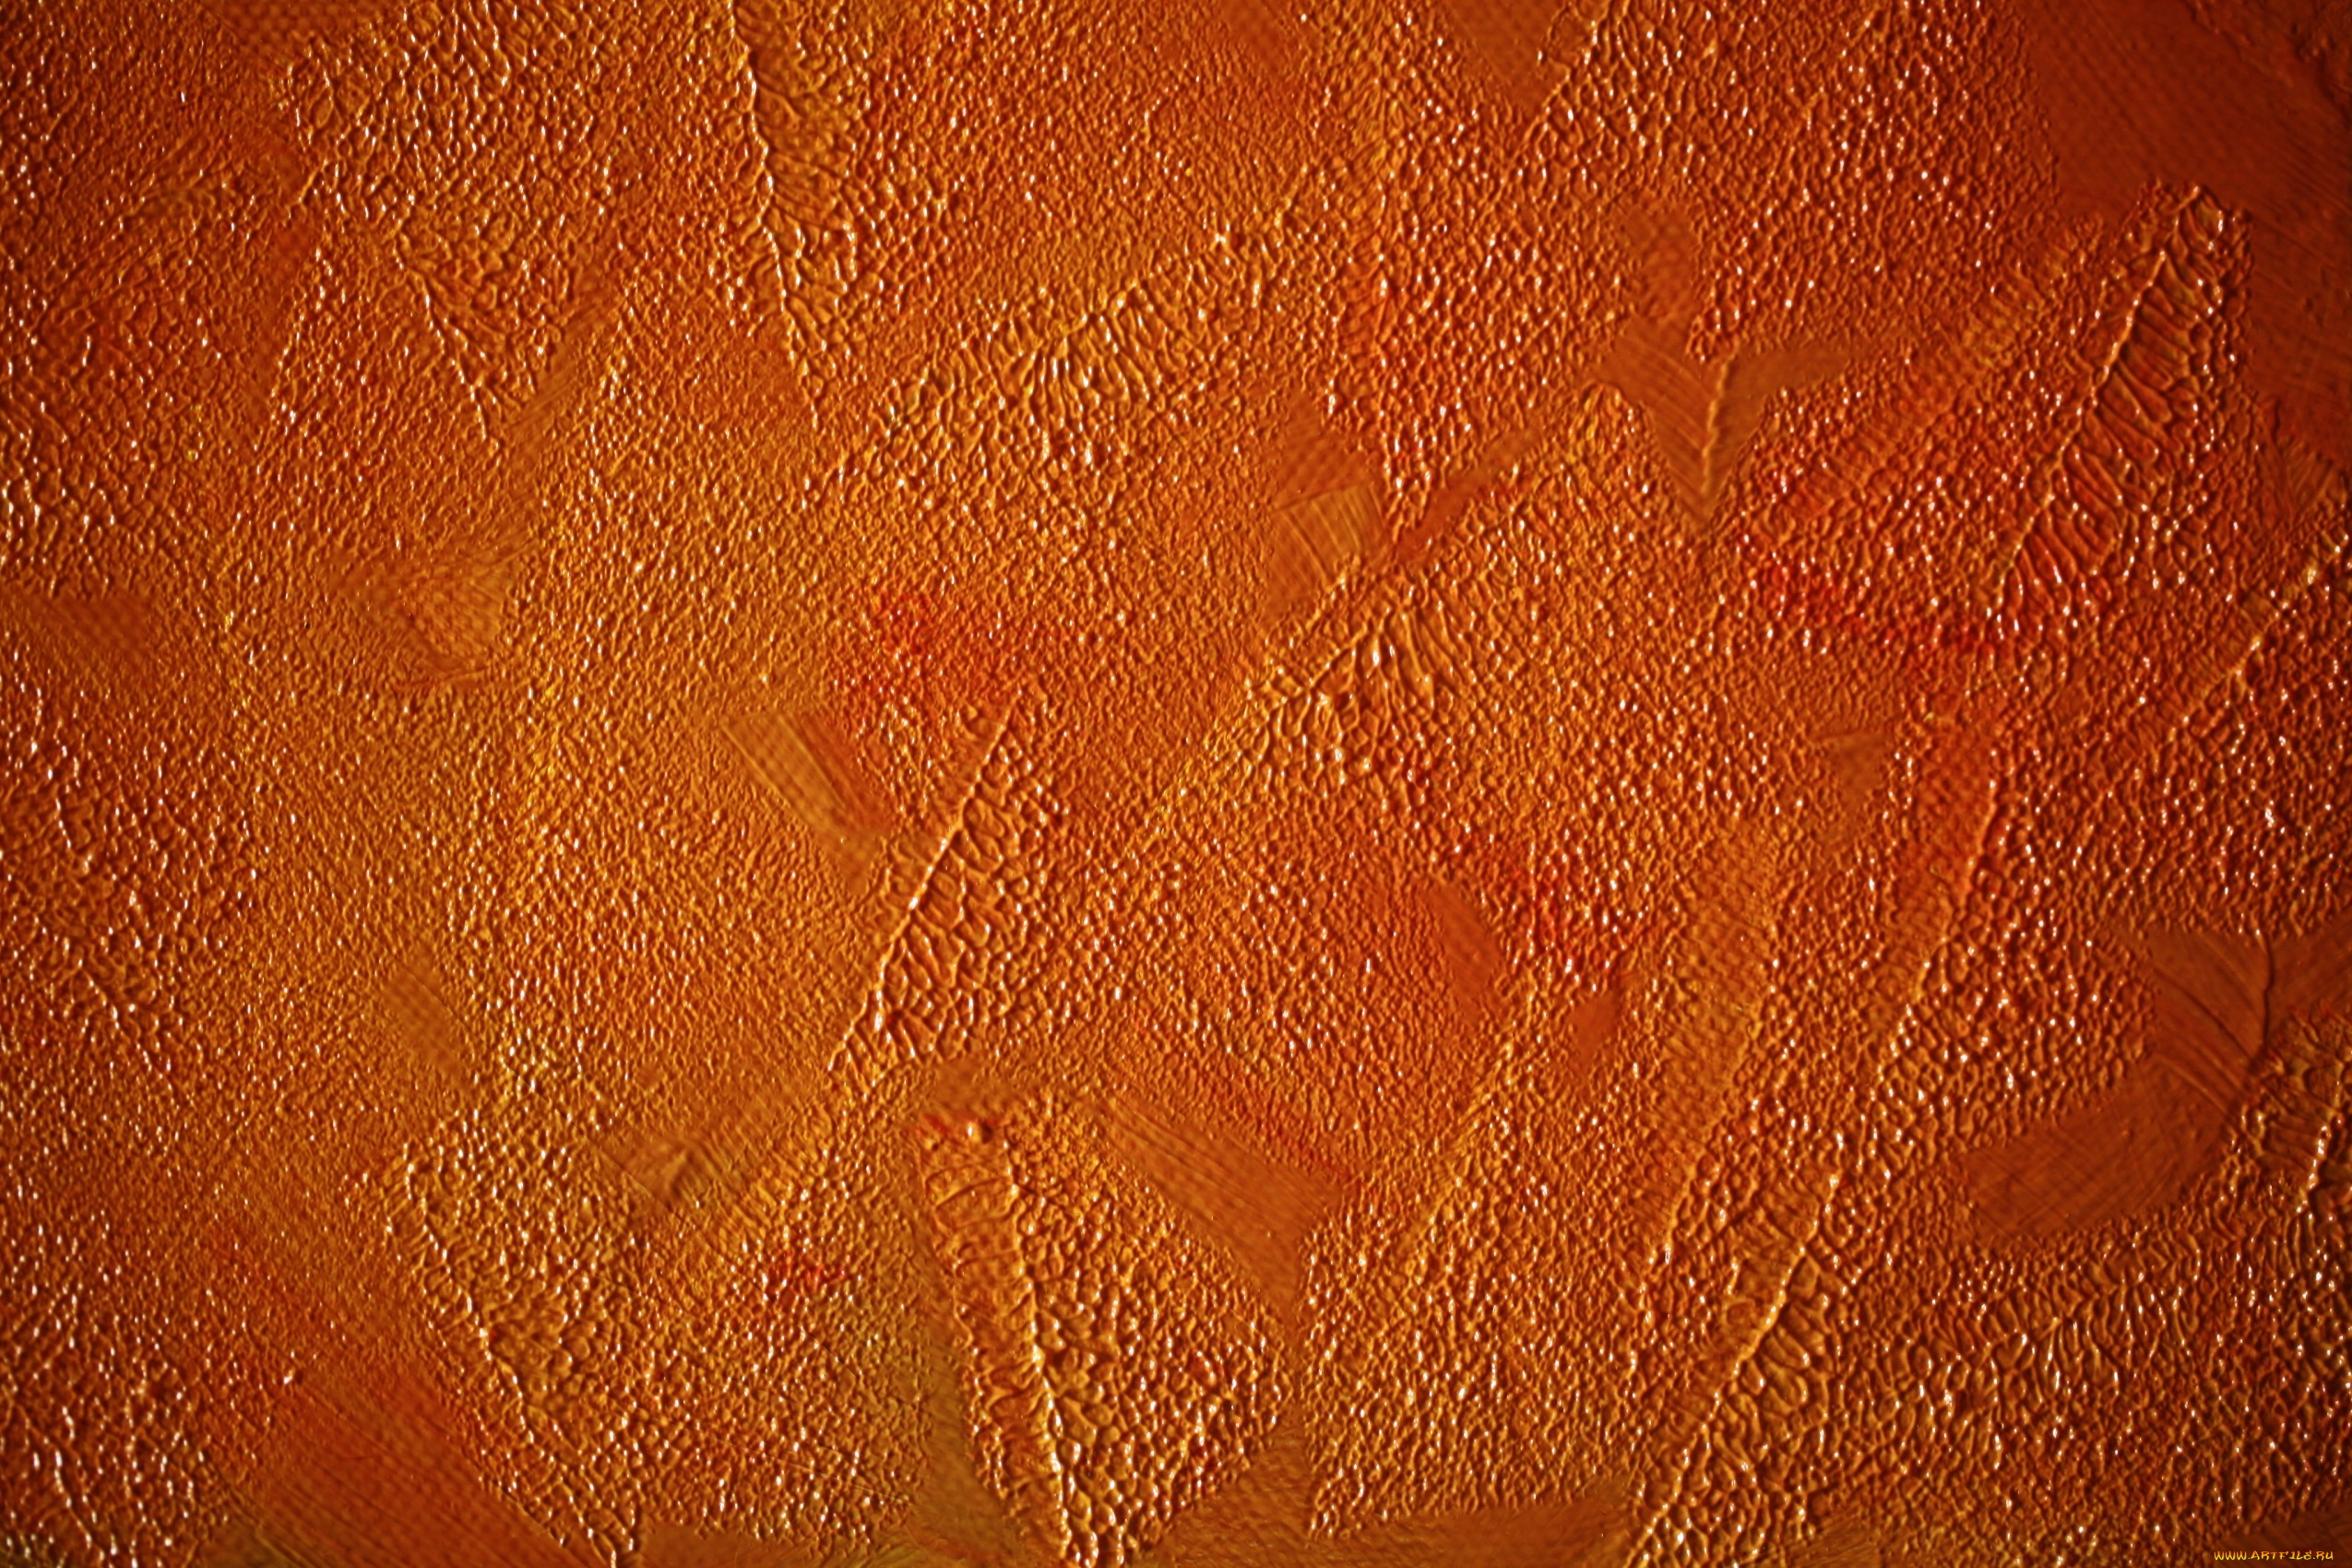 orange paint texture paints background download photo ForTexture Paint Images